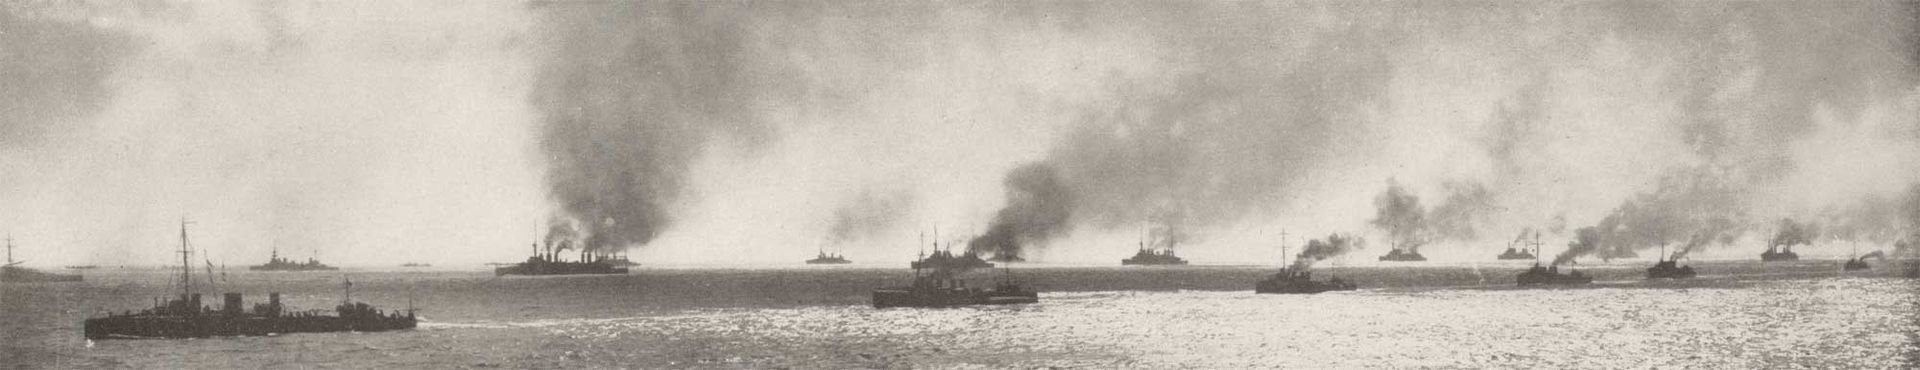 View of the fleet taken by Navy photographer